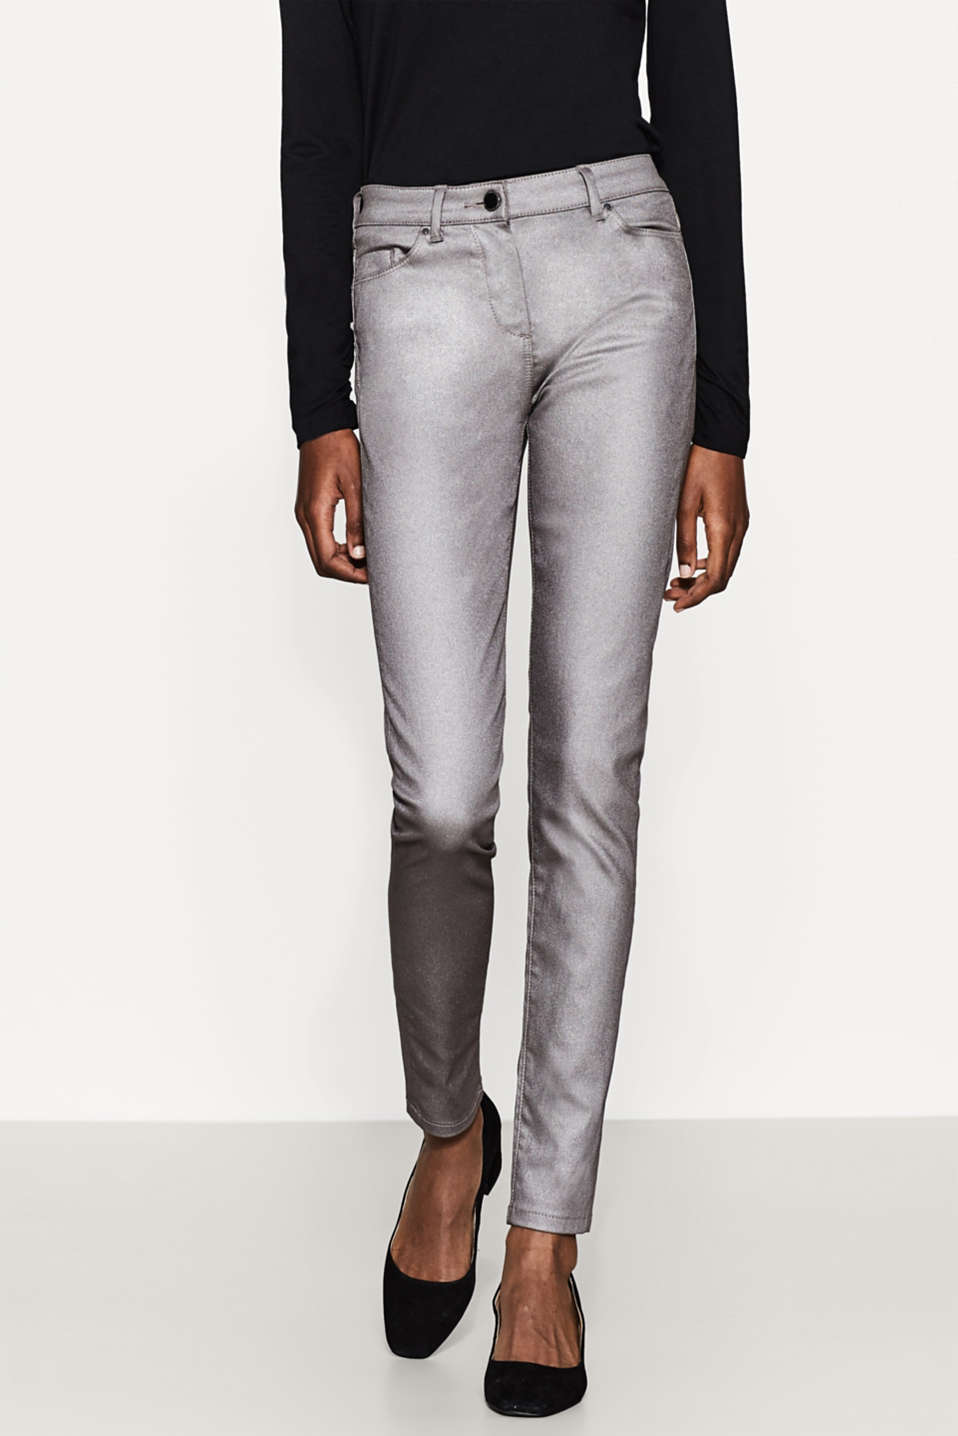 Esprit - Skinny trousers with silver-coloured coating